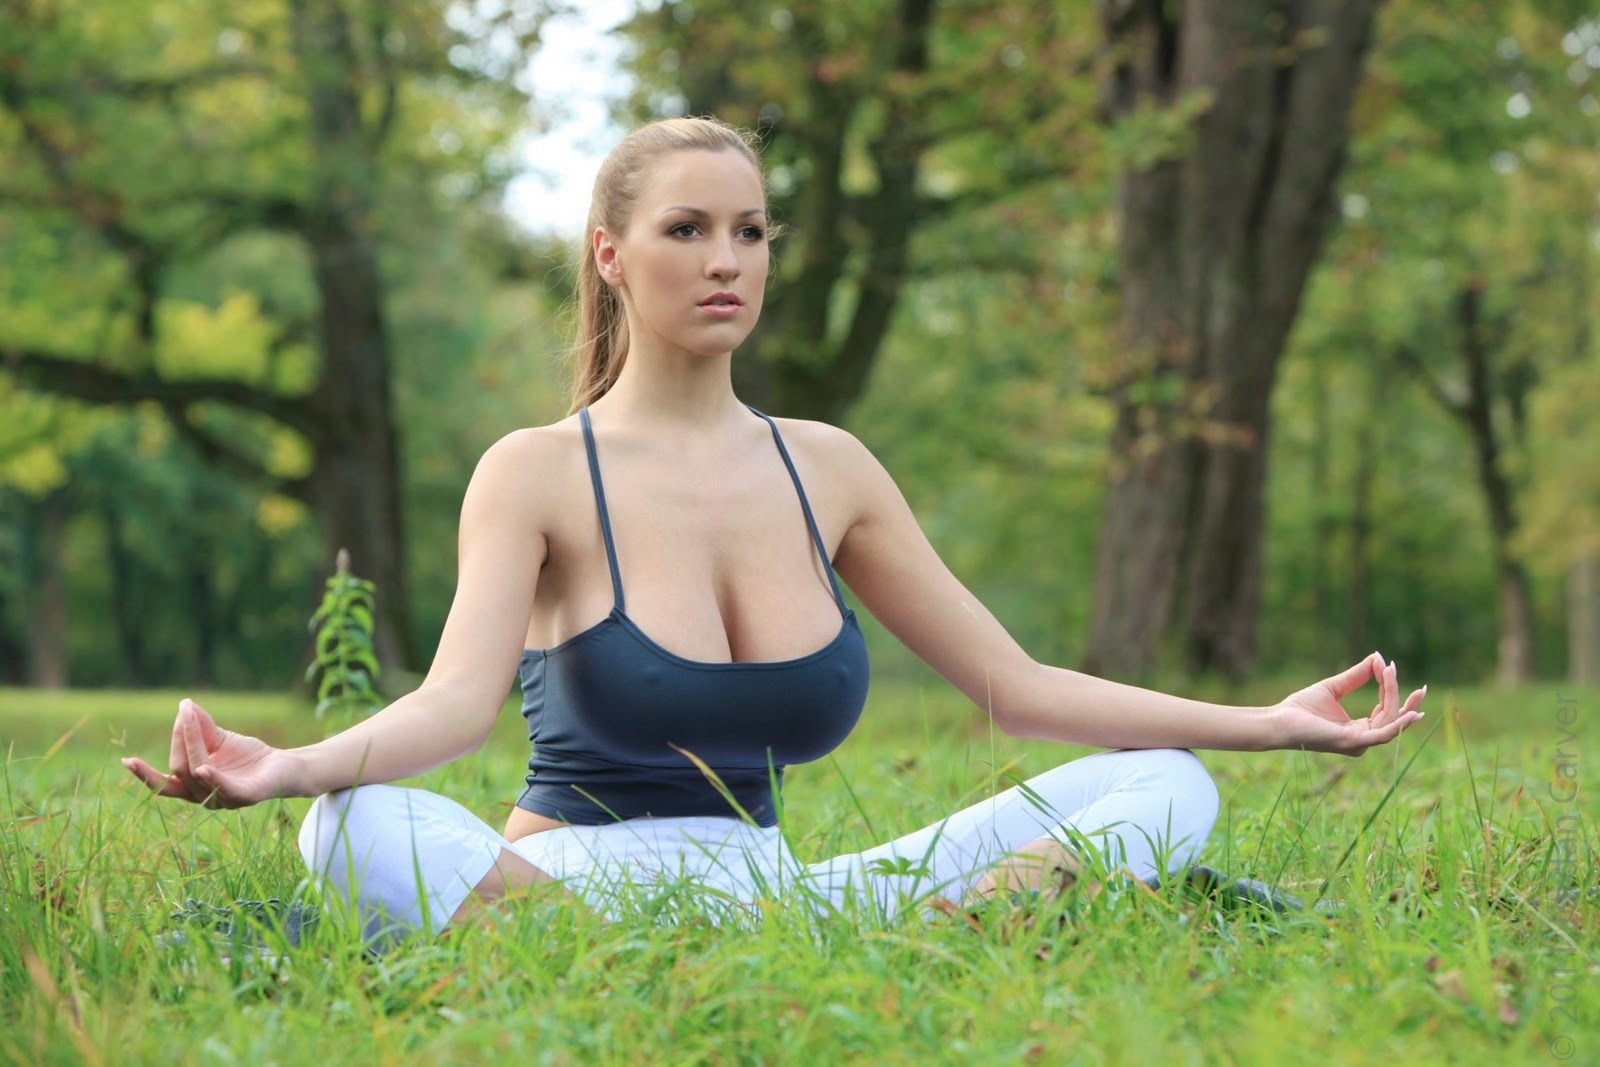 Jordan Carver S Hot Images